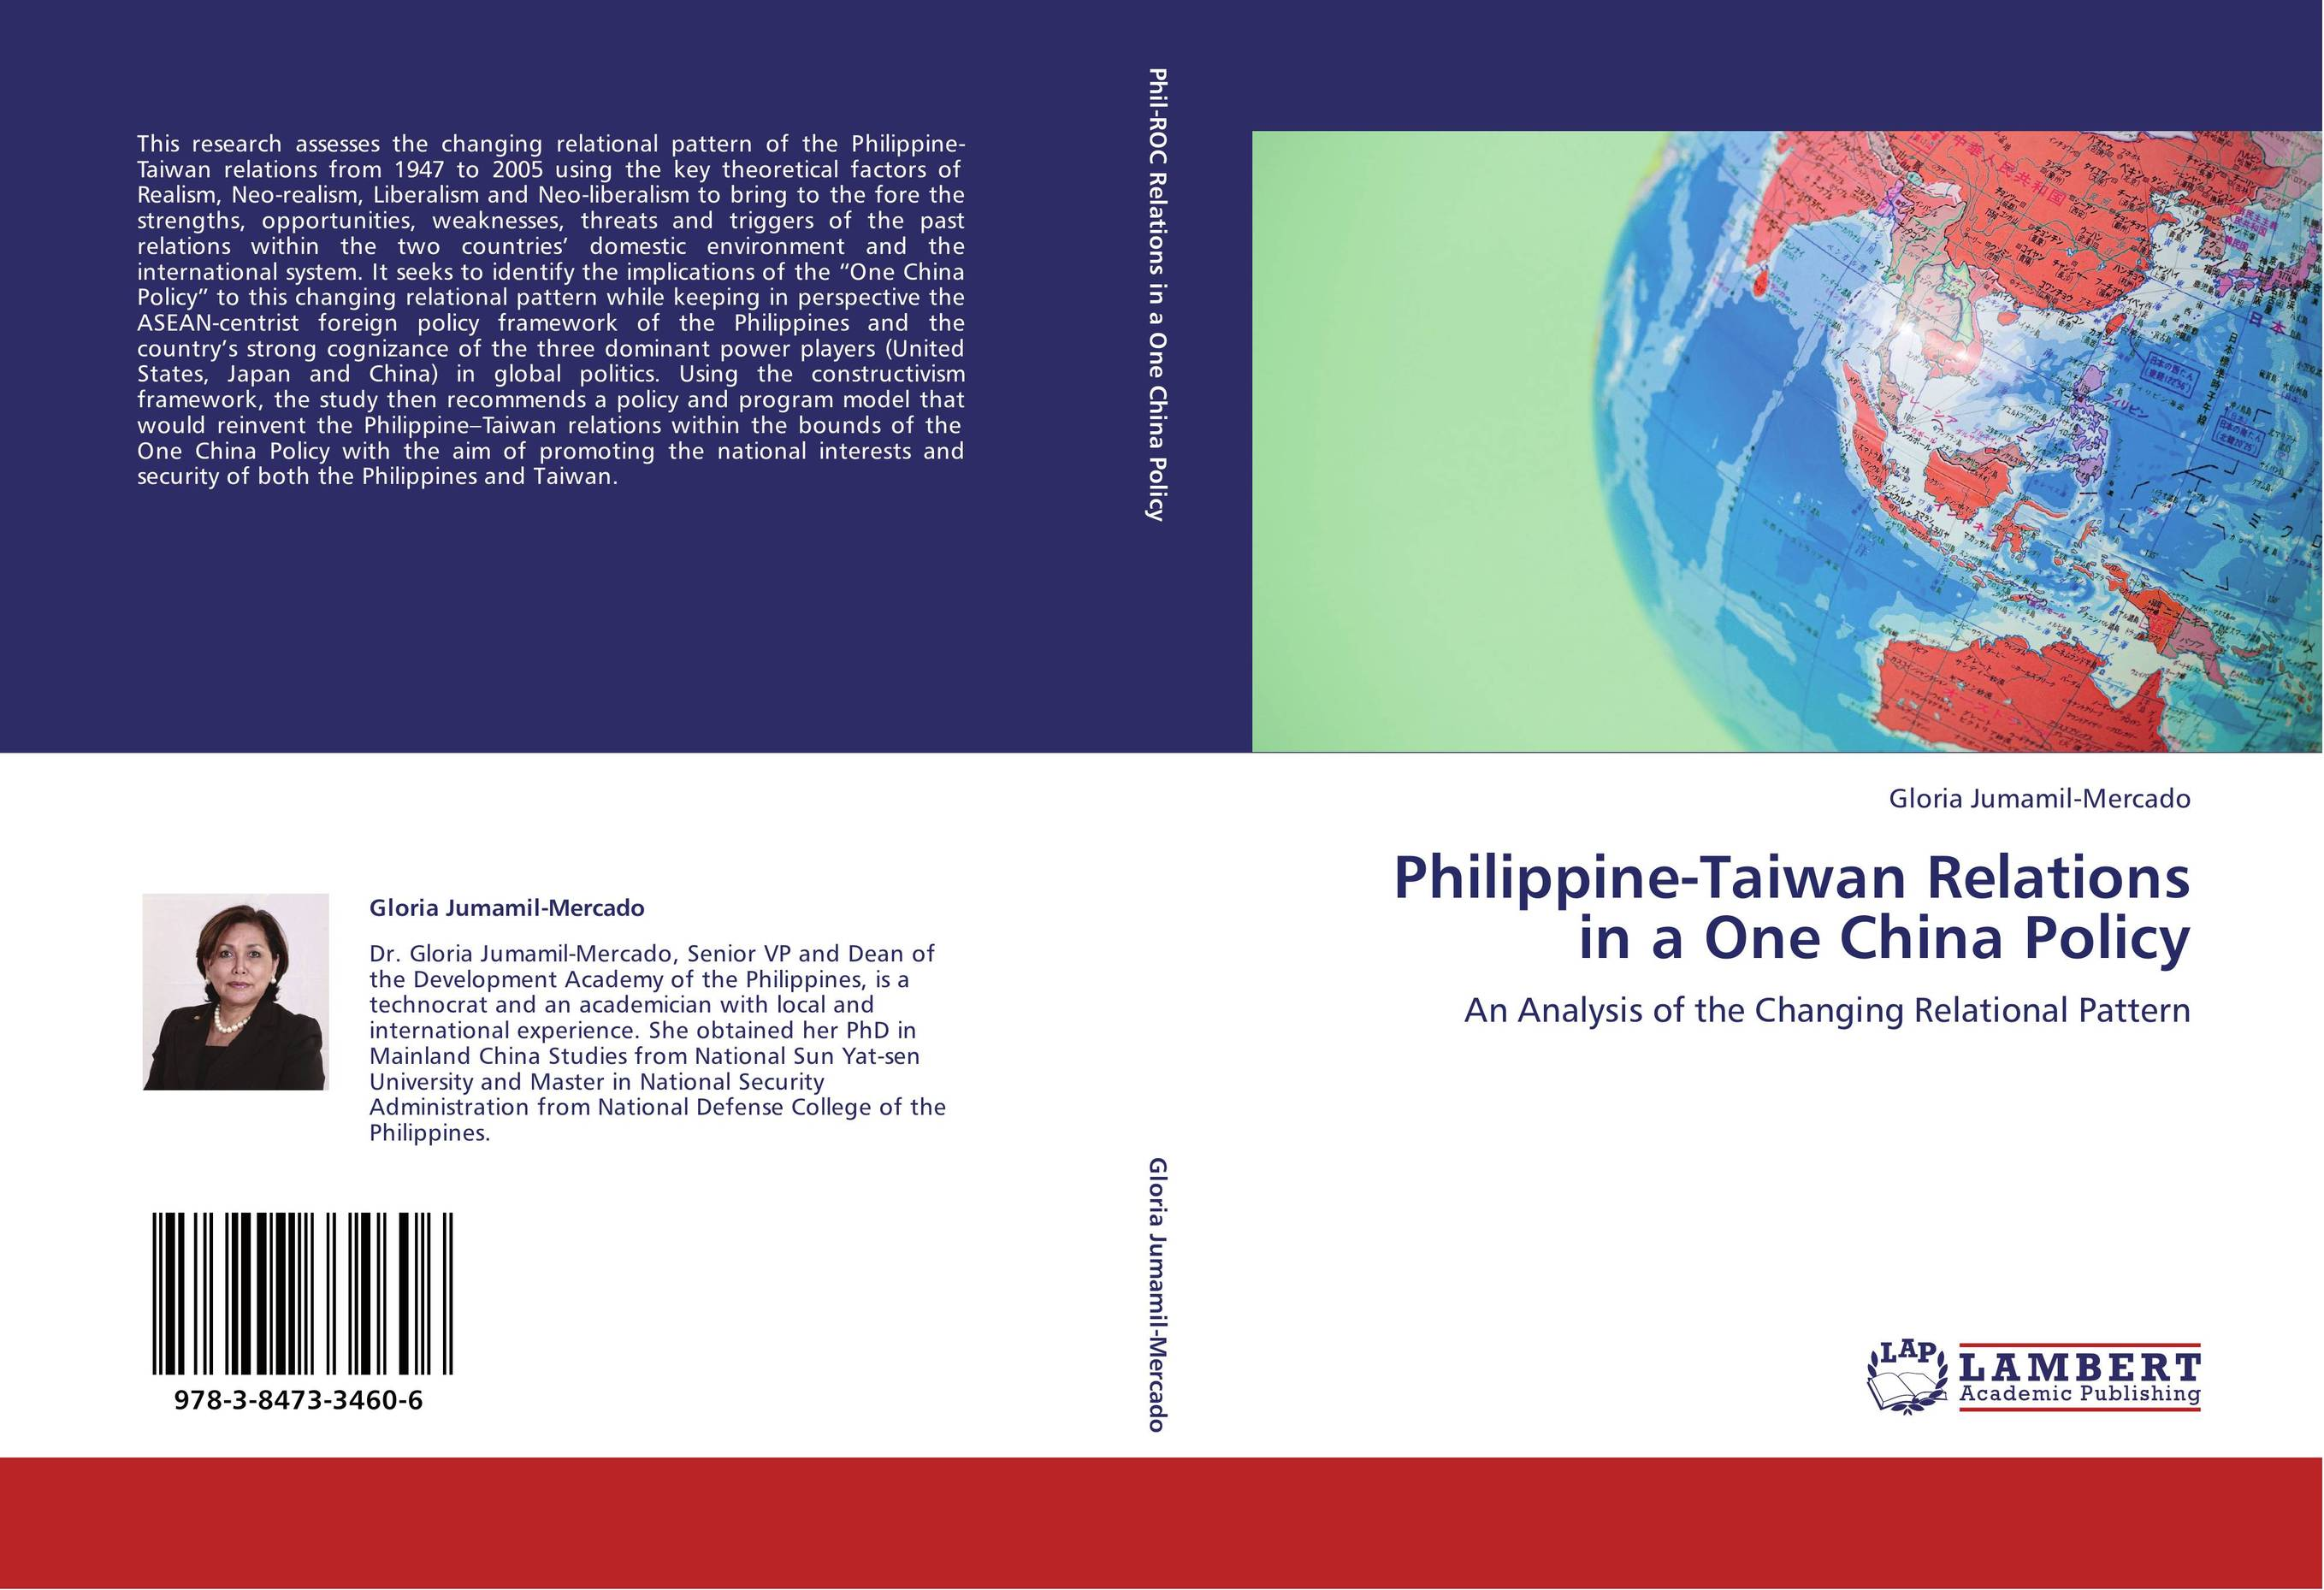 an analysis of taiwan complex challenge to the international community Taiwan spain england france us italy germany japan hourly wage comparison among key textile manufacturing countries  these regulations resulted in a complex industry structure, which is  capabilities to the international community new product developmentneeds additional focus in indian companies in order to move up the value-chain and capture a greater global market share.